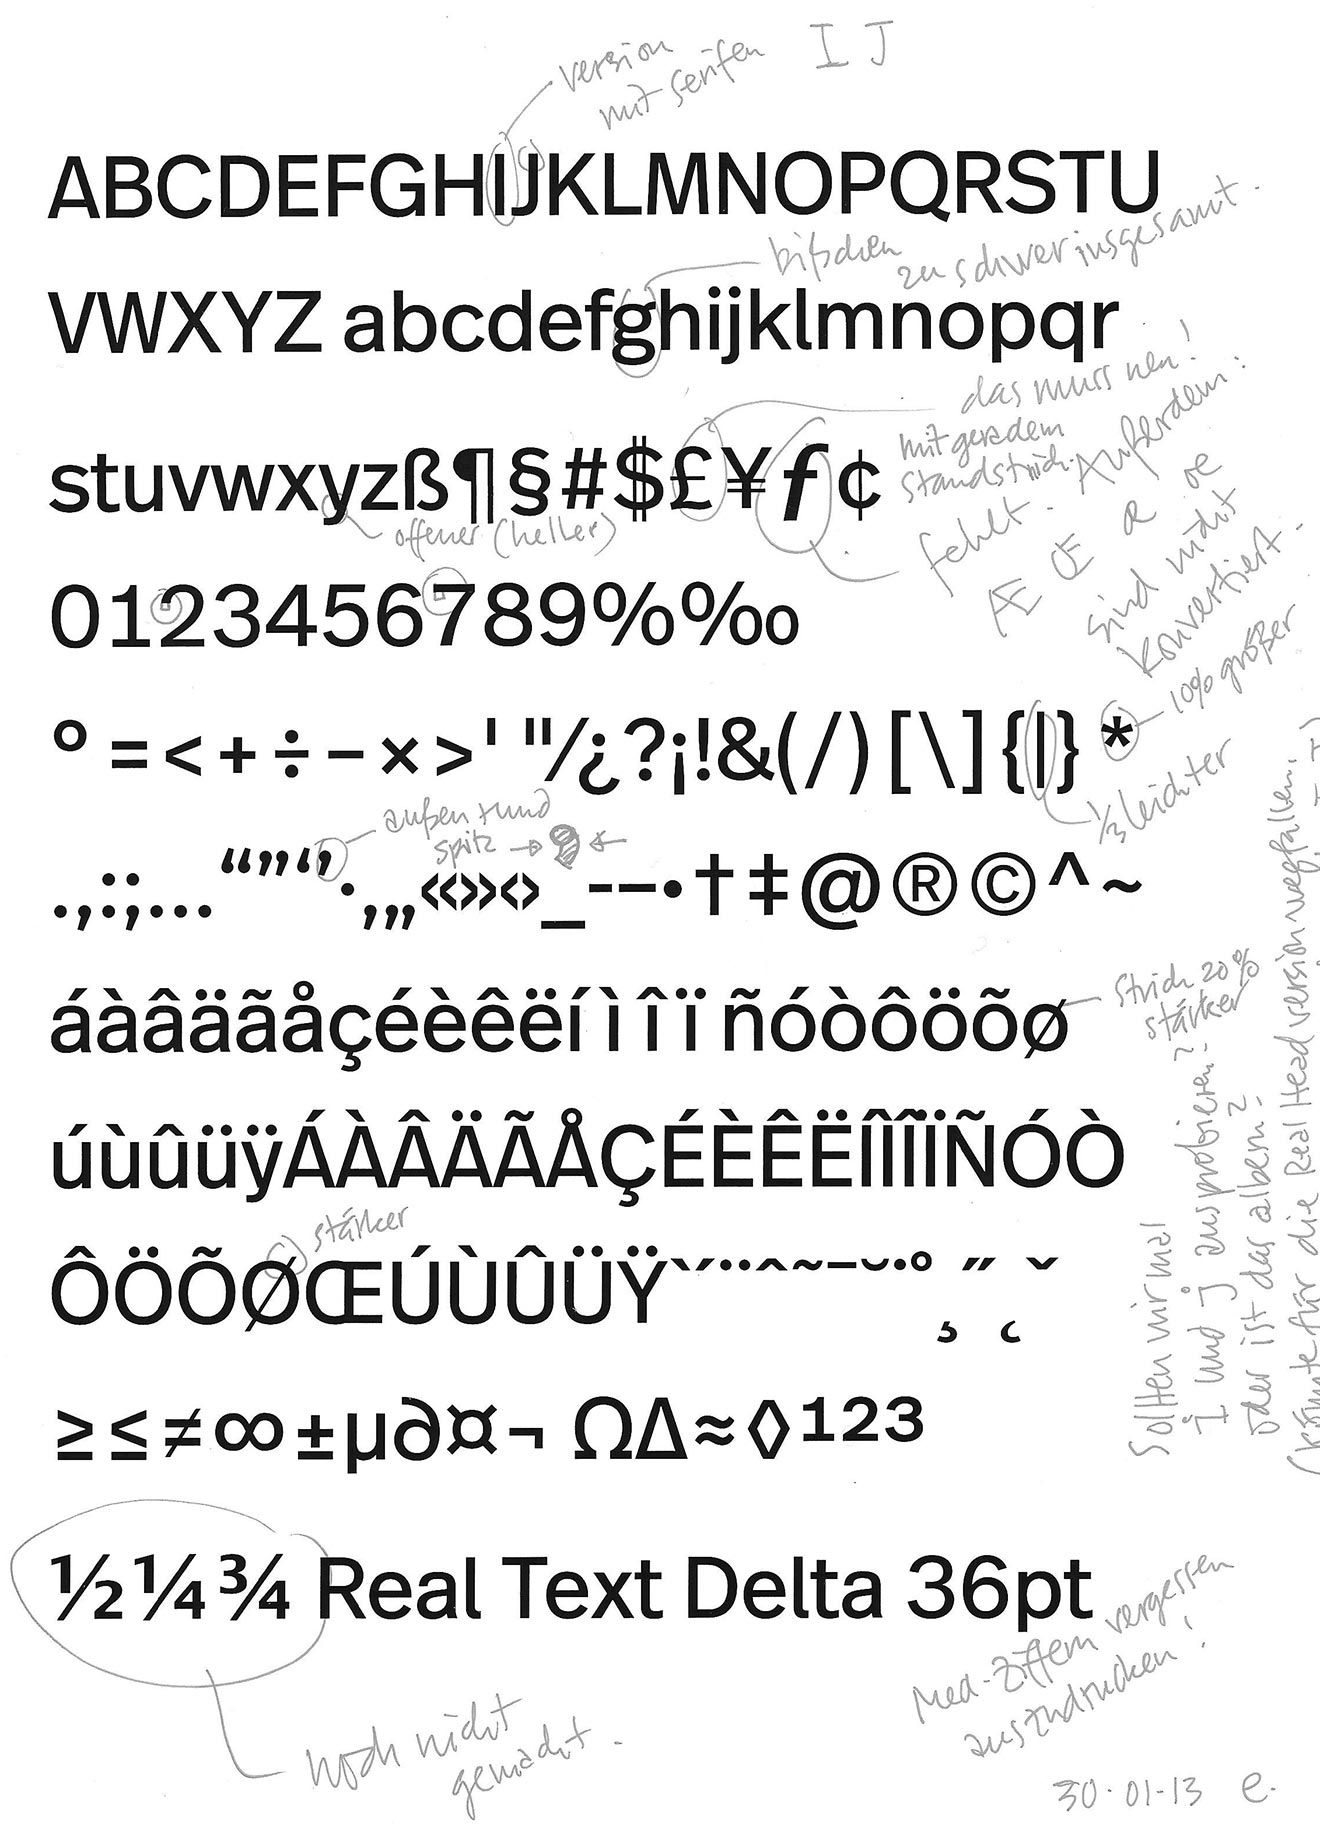 In mid-January 2013 Spiekermann passed on his digital drawings to Carrois. This is the first correction sheet dated 30/01/13 by Spiekermann, after Carrois had cleaned up his data and extended it.